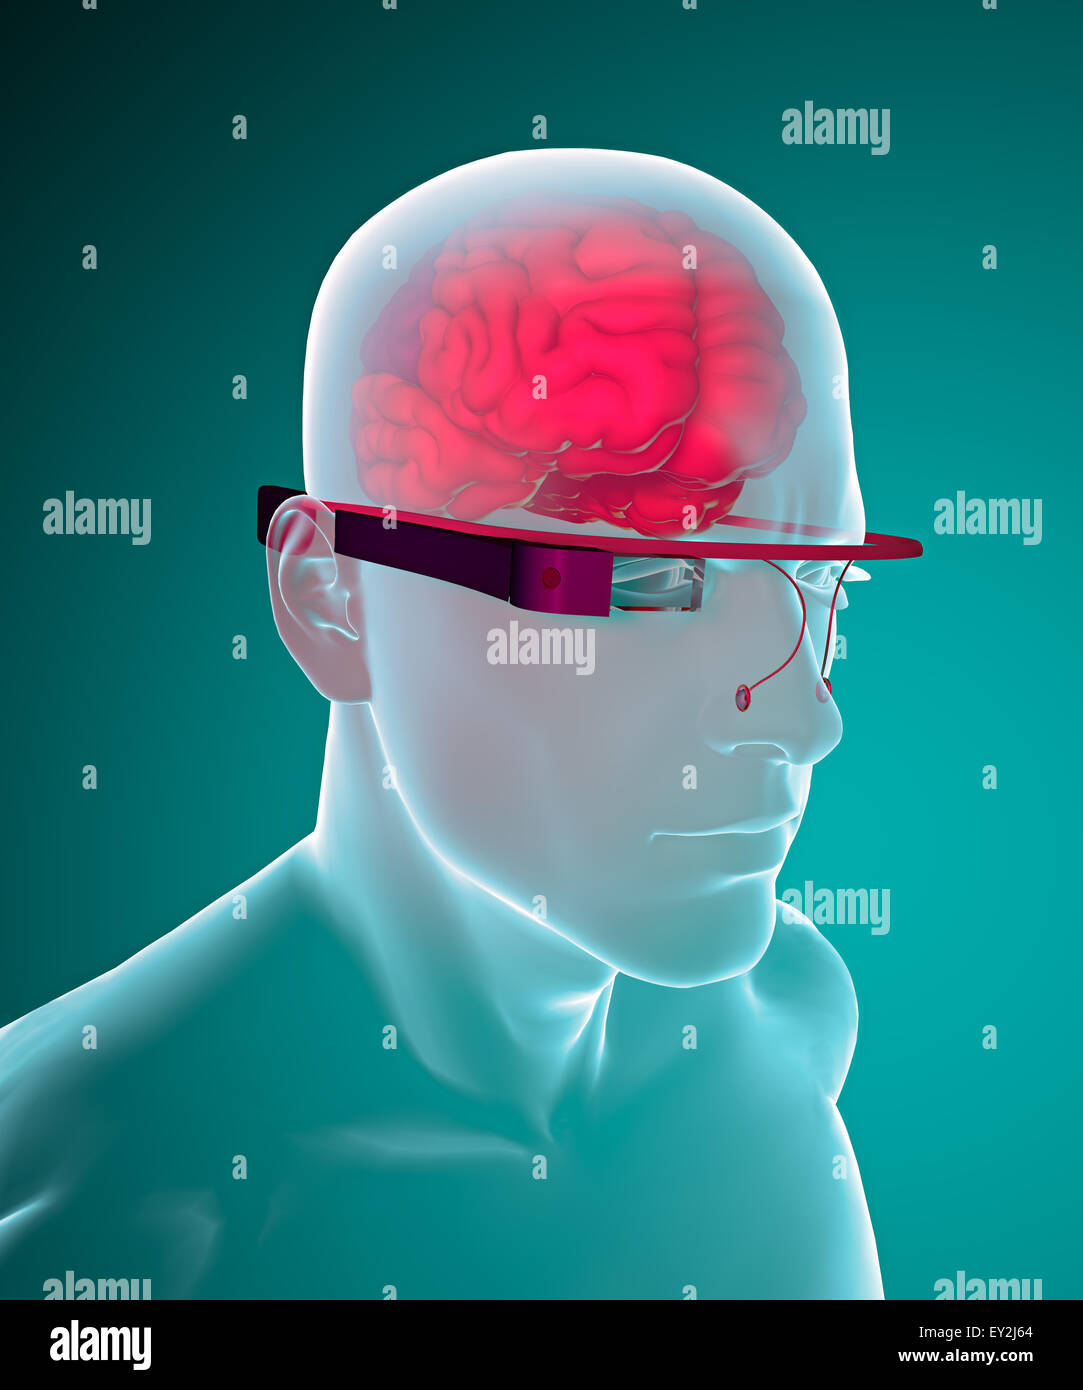 3d interactive glasses brain anatomy Stock Photo: 85495372 - Alamy